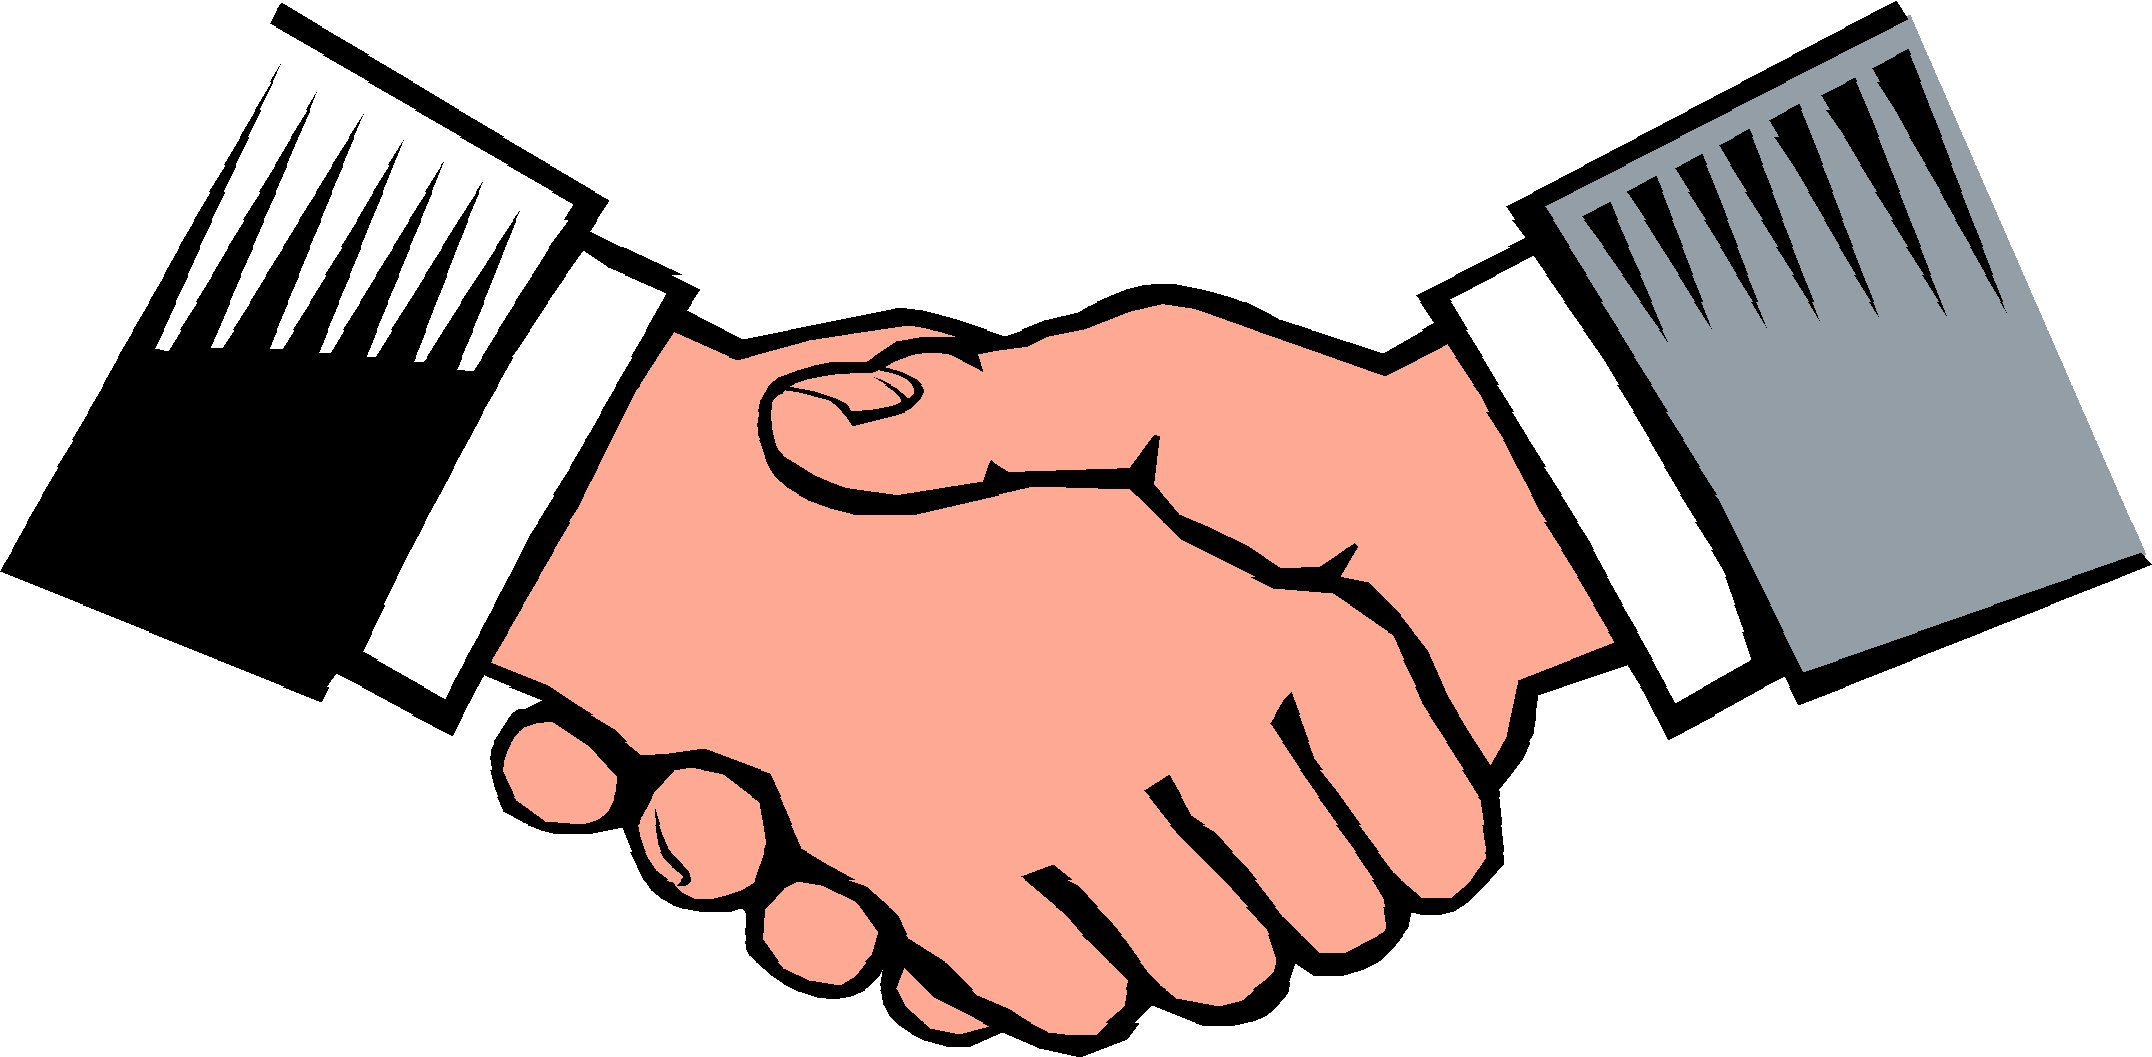 2152x1057 Handshake Shaking Hands Hand Shake Clip Art Related Cliparts